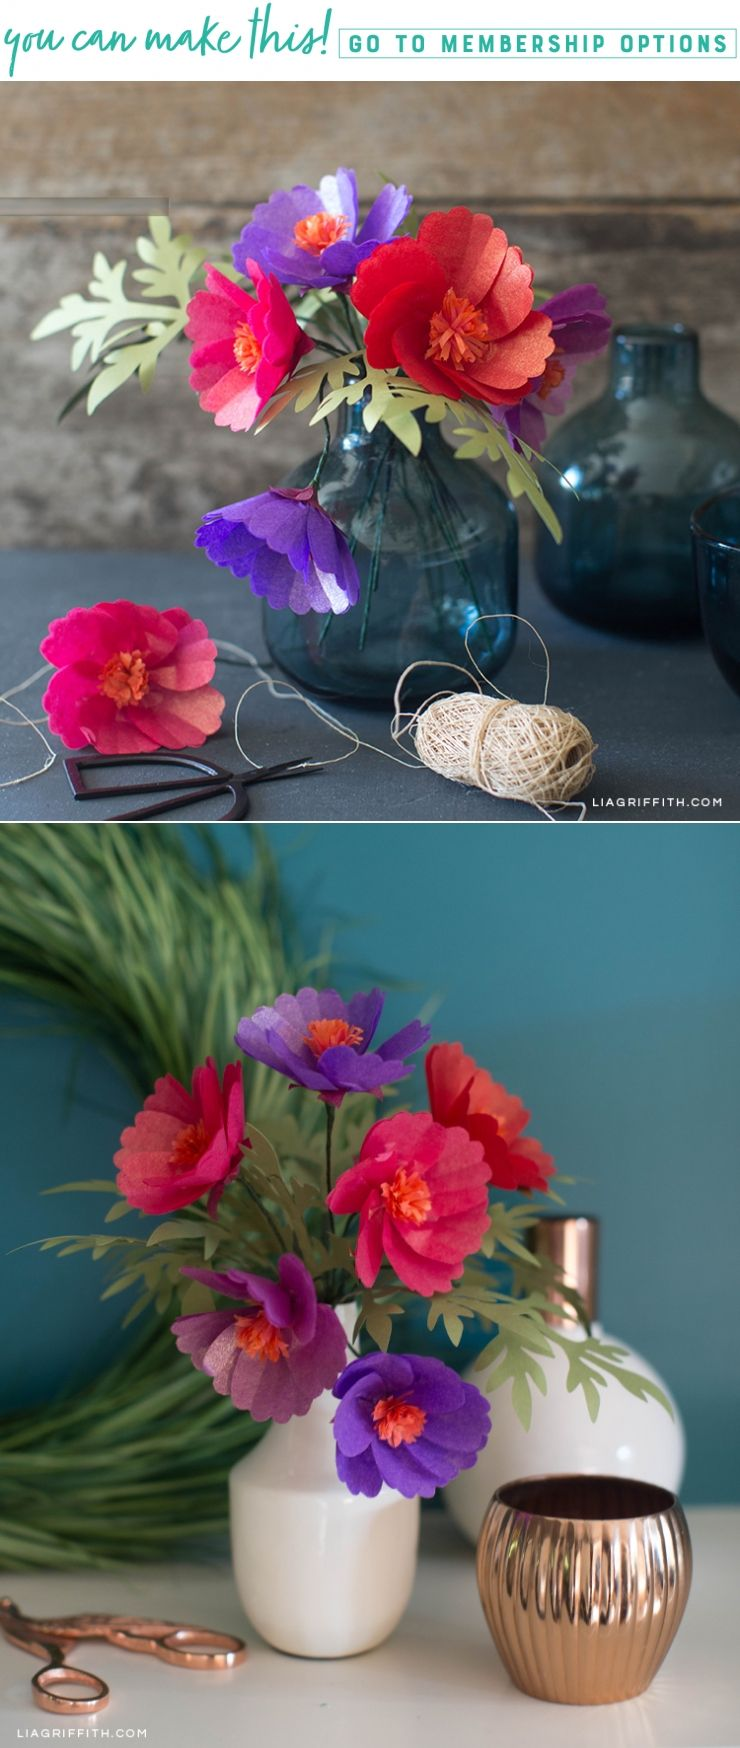 Making Tissue Paper Cosmos Flowers  Flowers  Pinterest  Cosmos